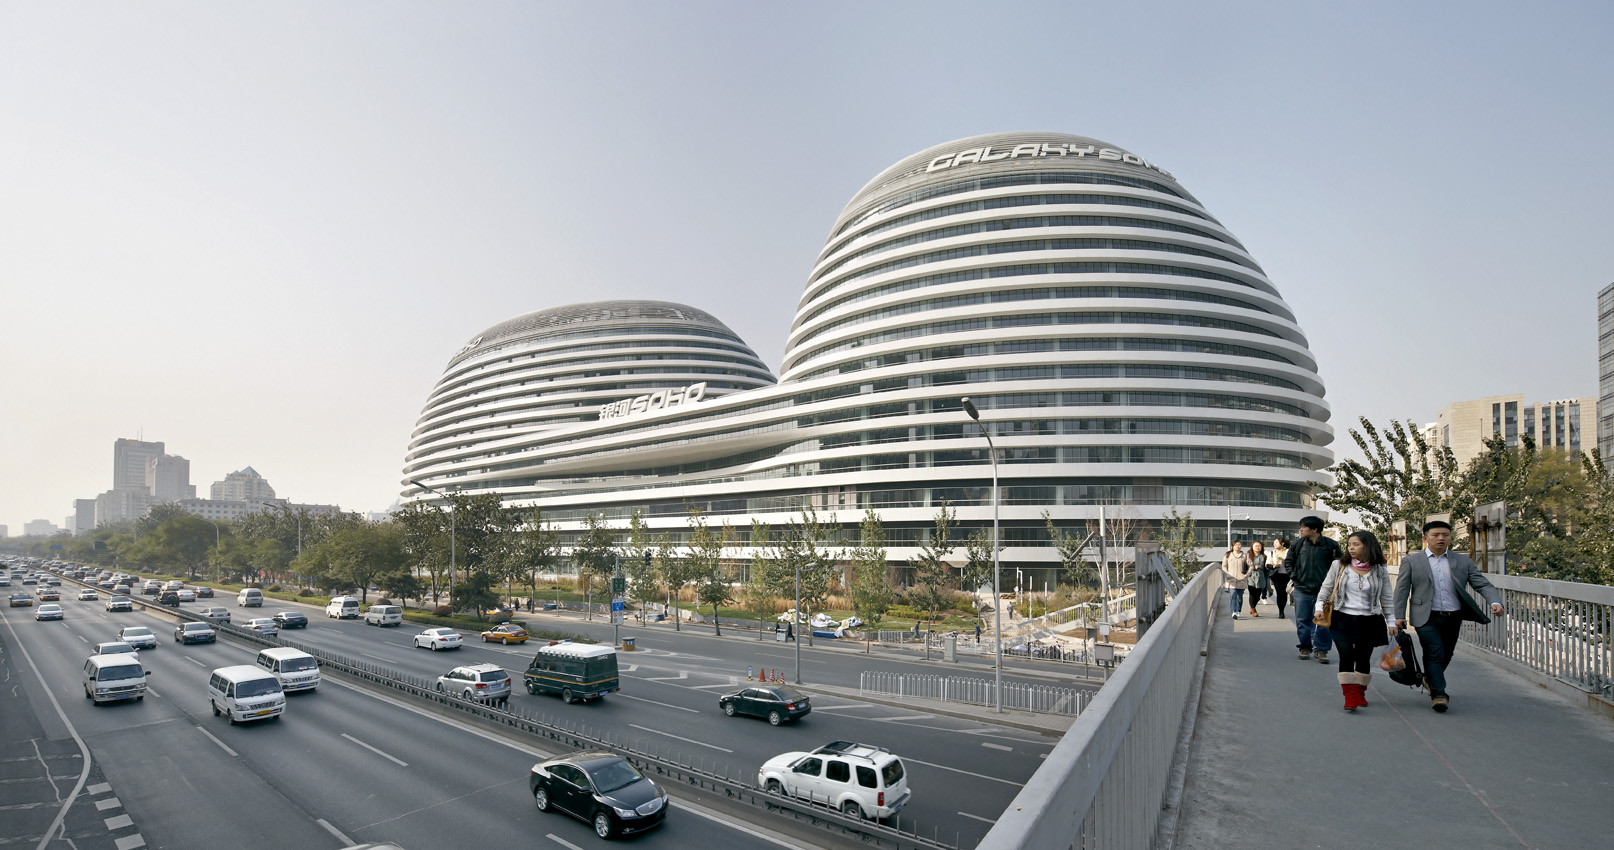 Galaxy Soho / Zaha Hadid Architects by Hufton + Crow